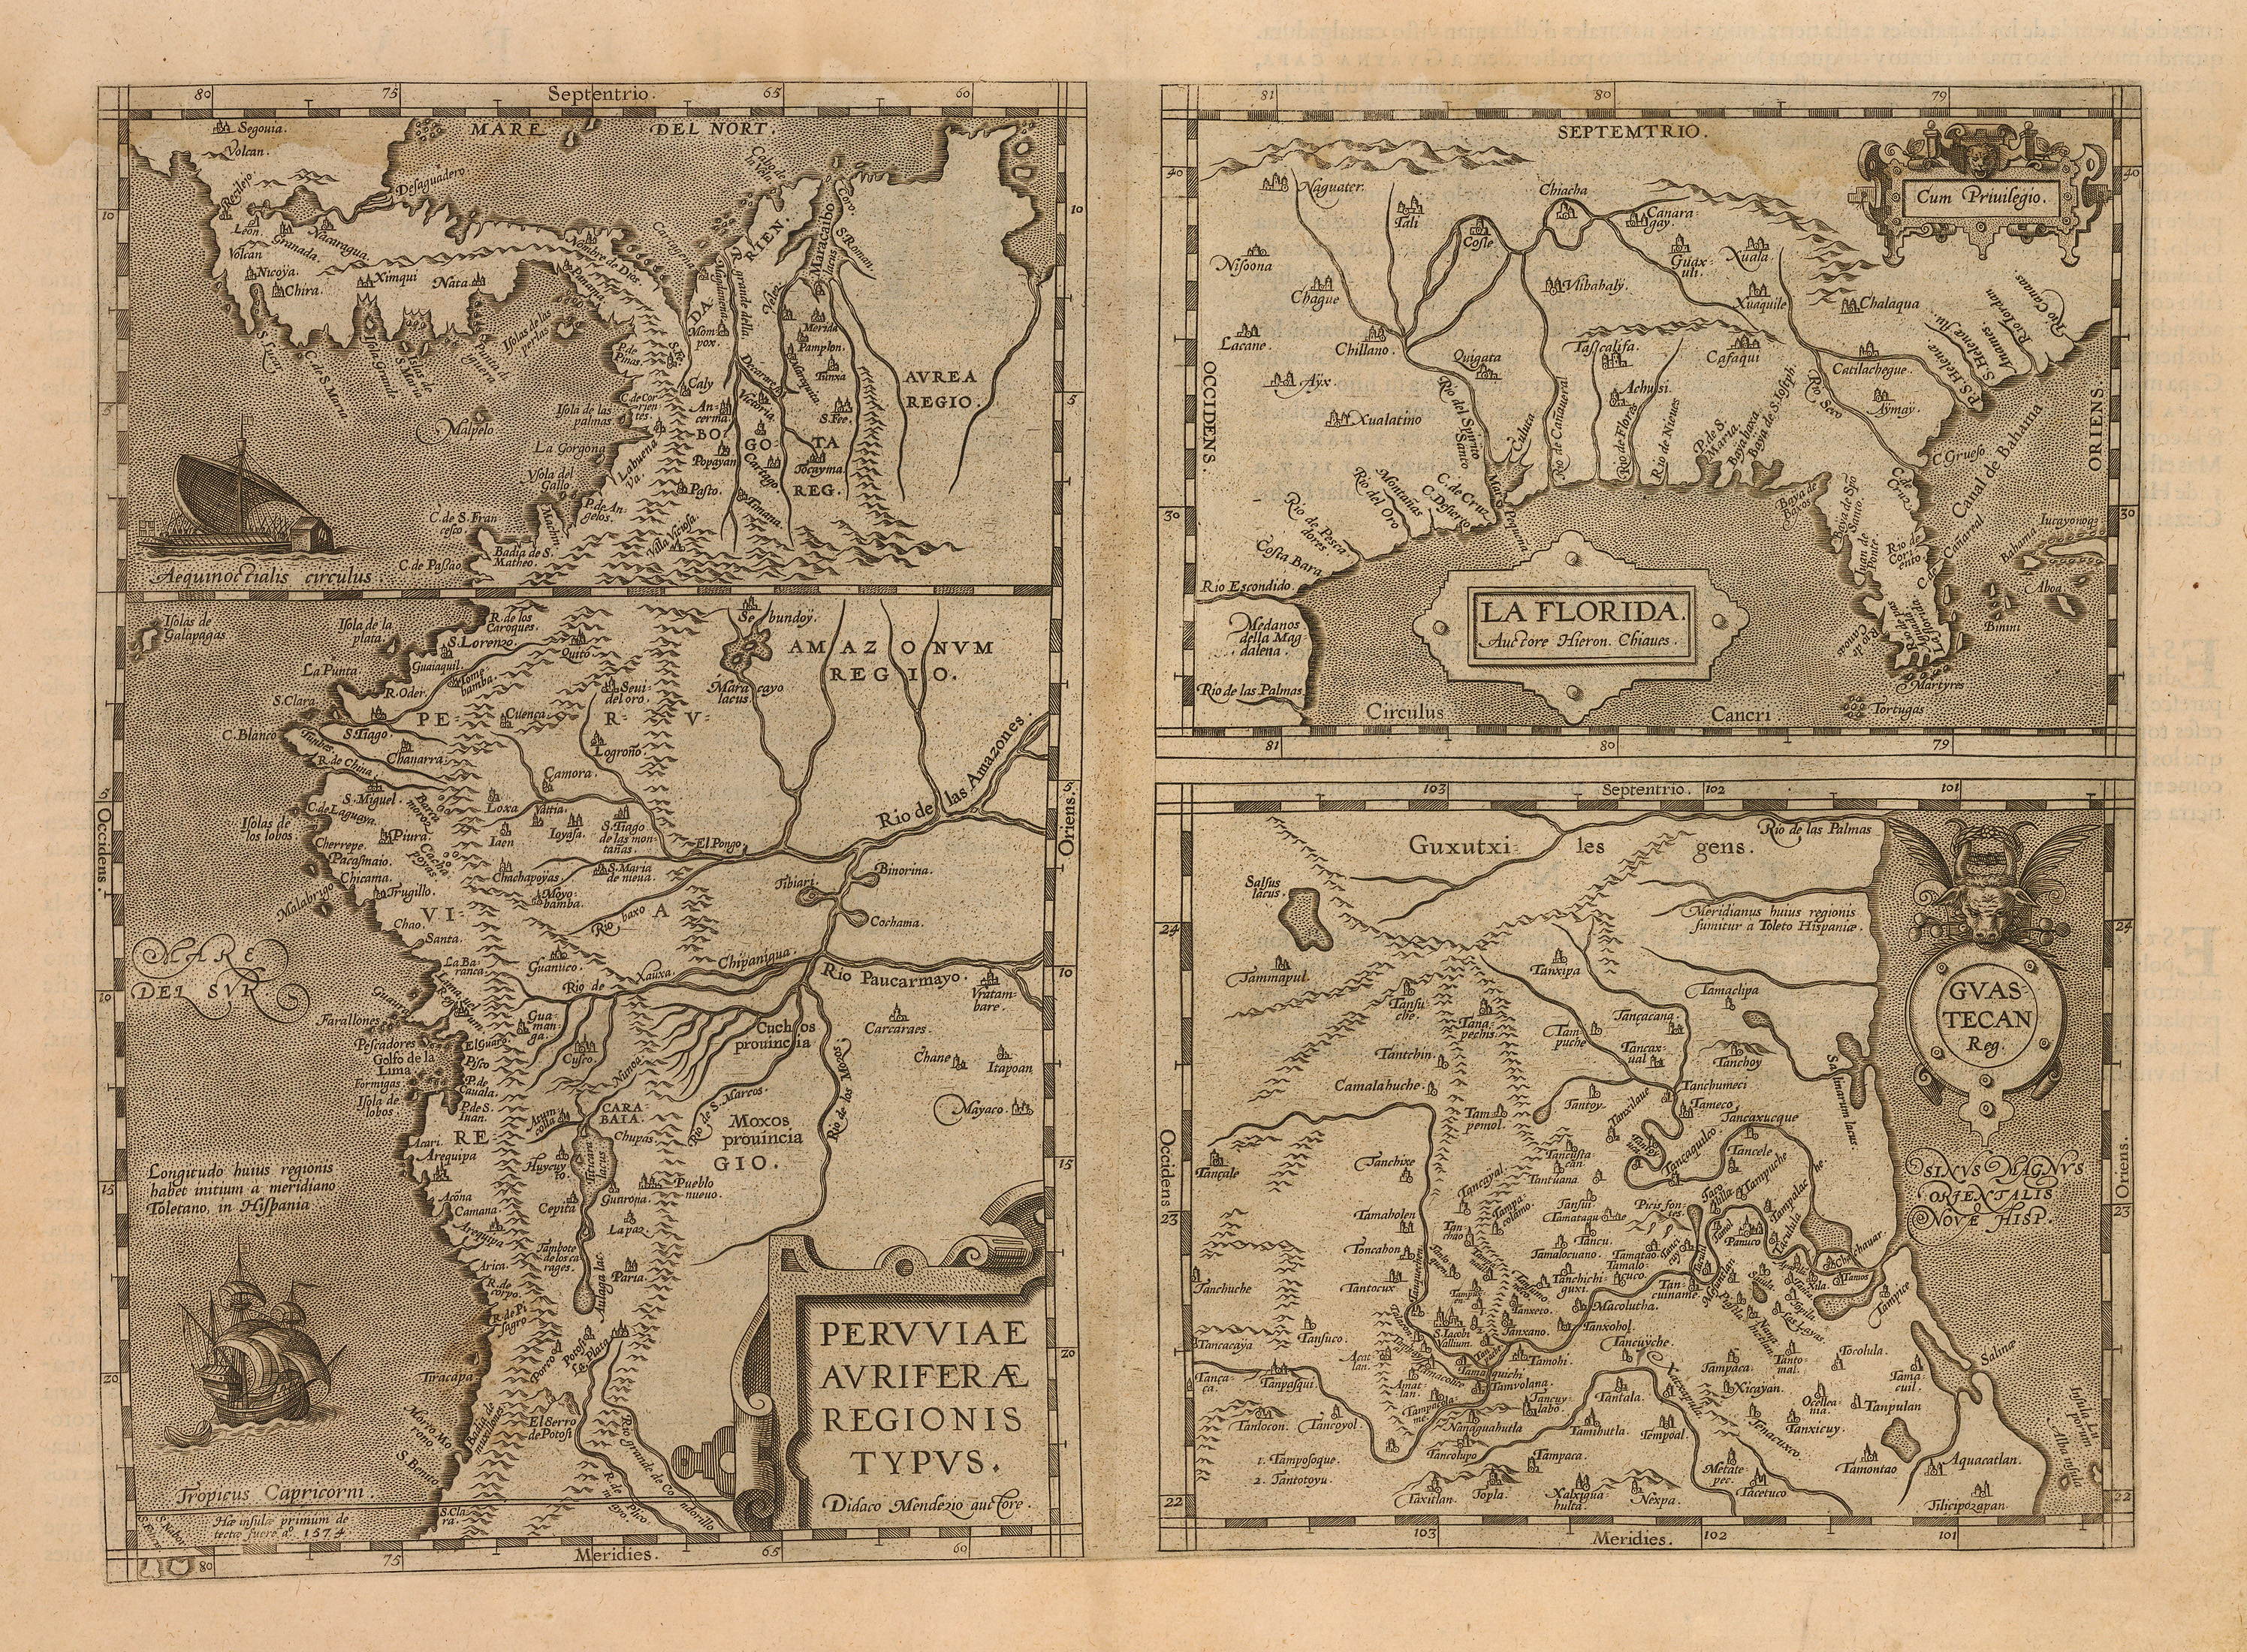 Antique Map Of Florida.1592 Peruviae Auriferae Regionis Typus La Florida Guastecan Reg